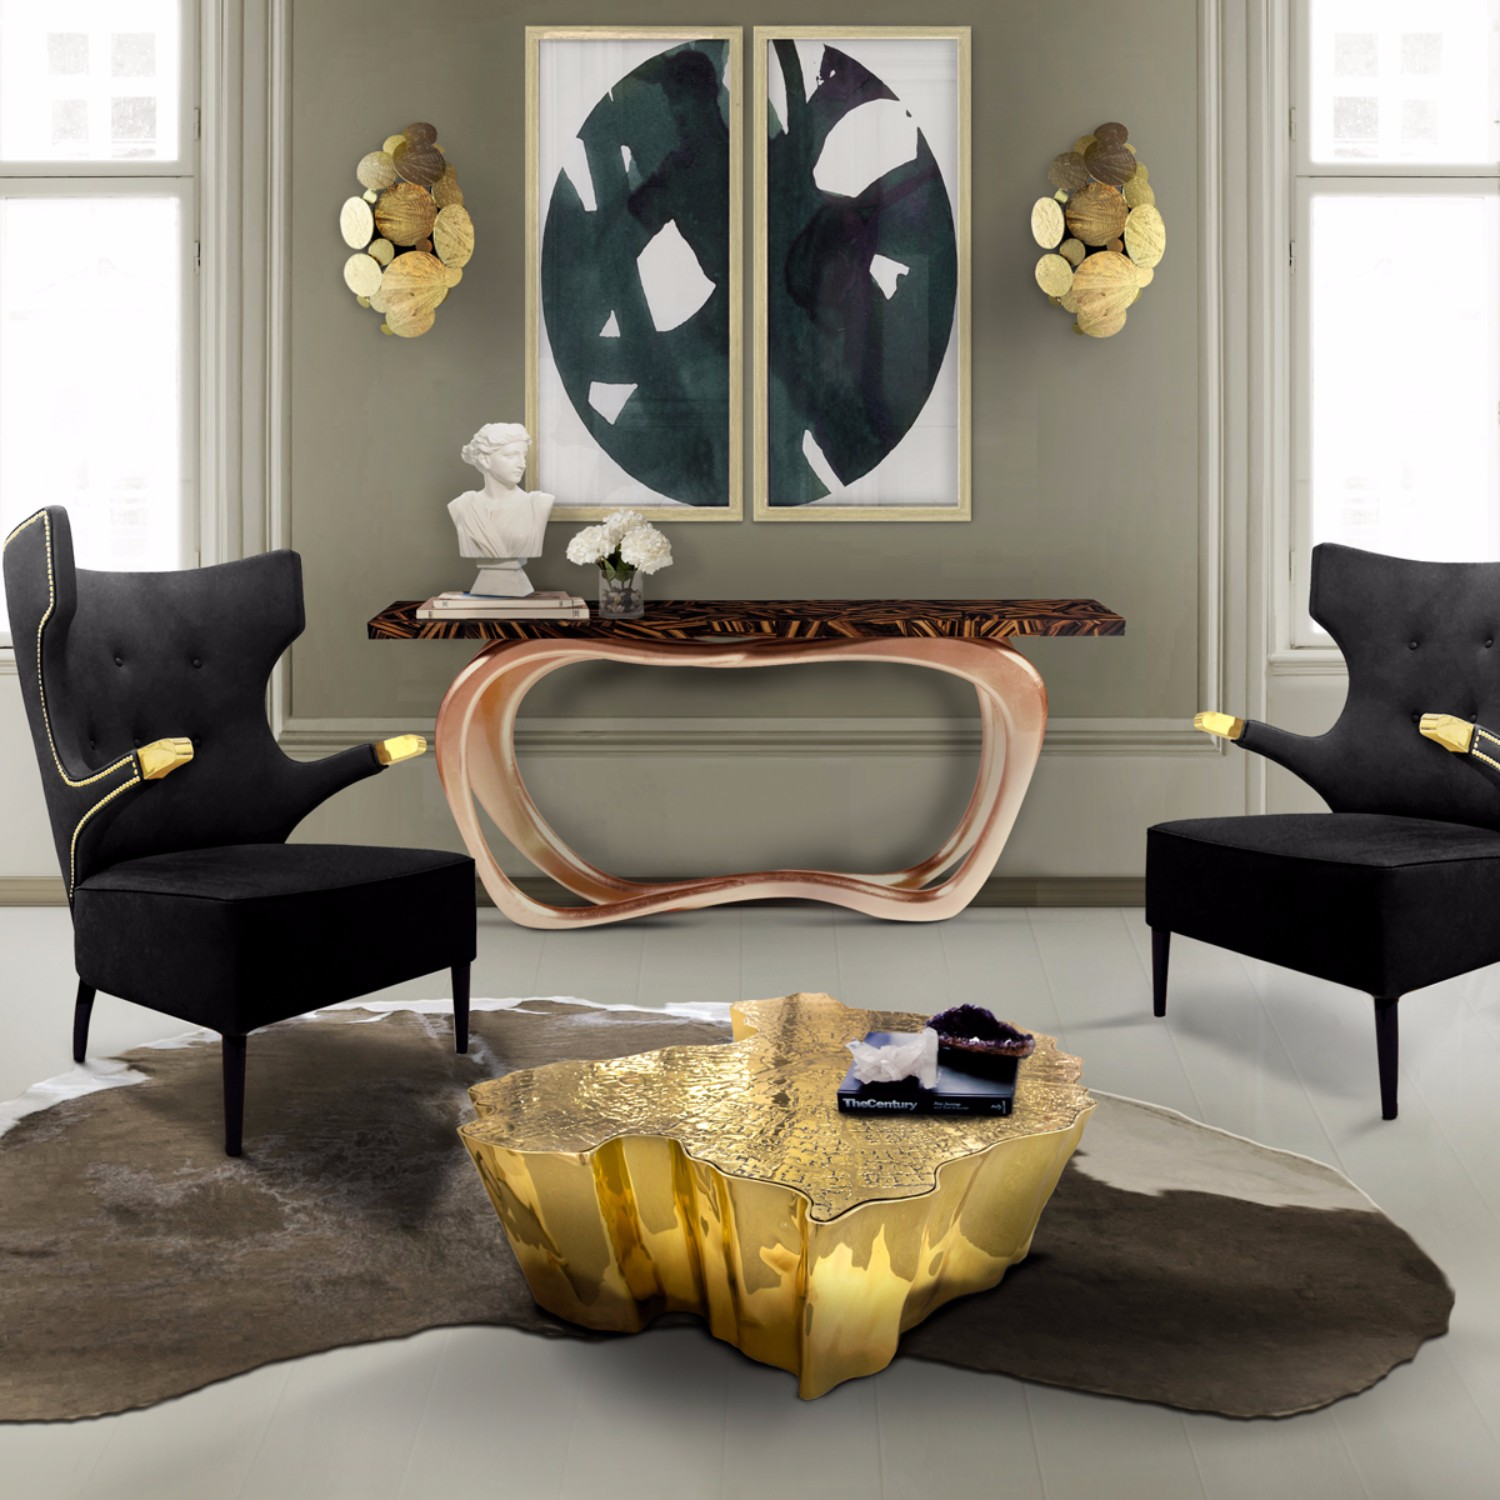 Center Table Ideas For Living Room Get Ideas For A New Center Table For Your Living Room Coffee